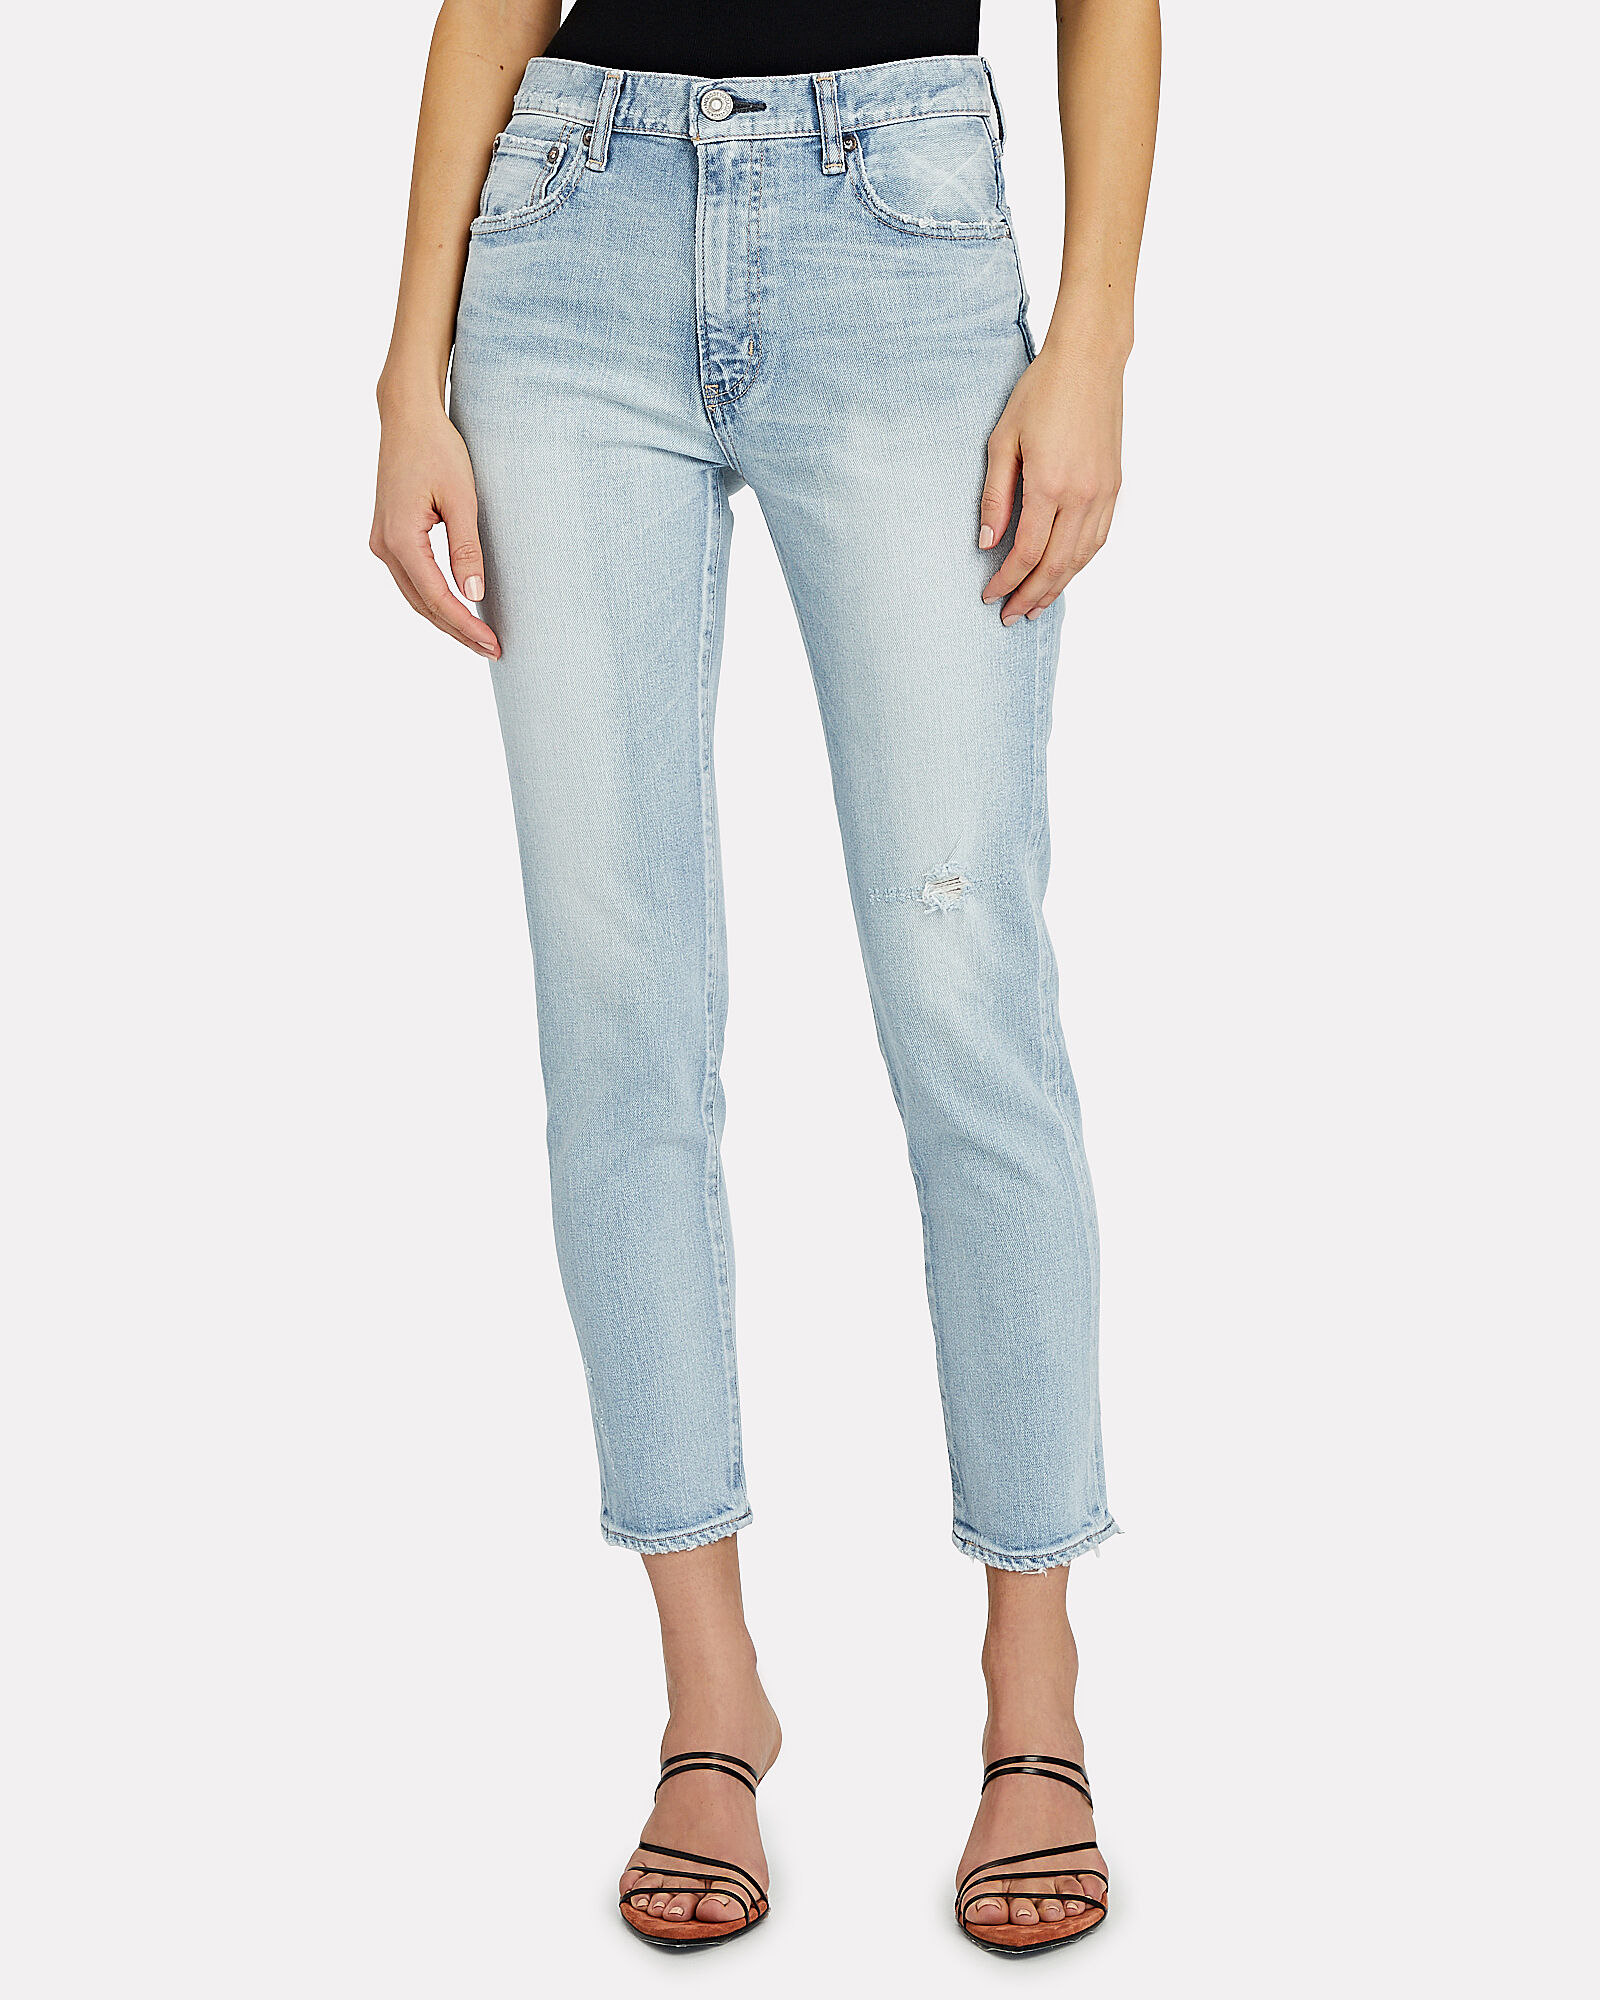 Hillrose High-Rise Skinny Jeans, LIGHT WASH DENIM, hi-res